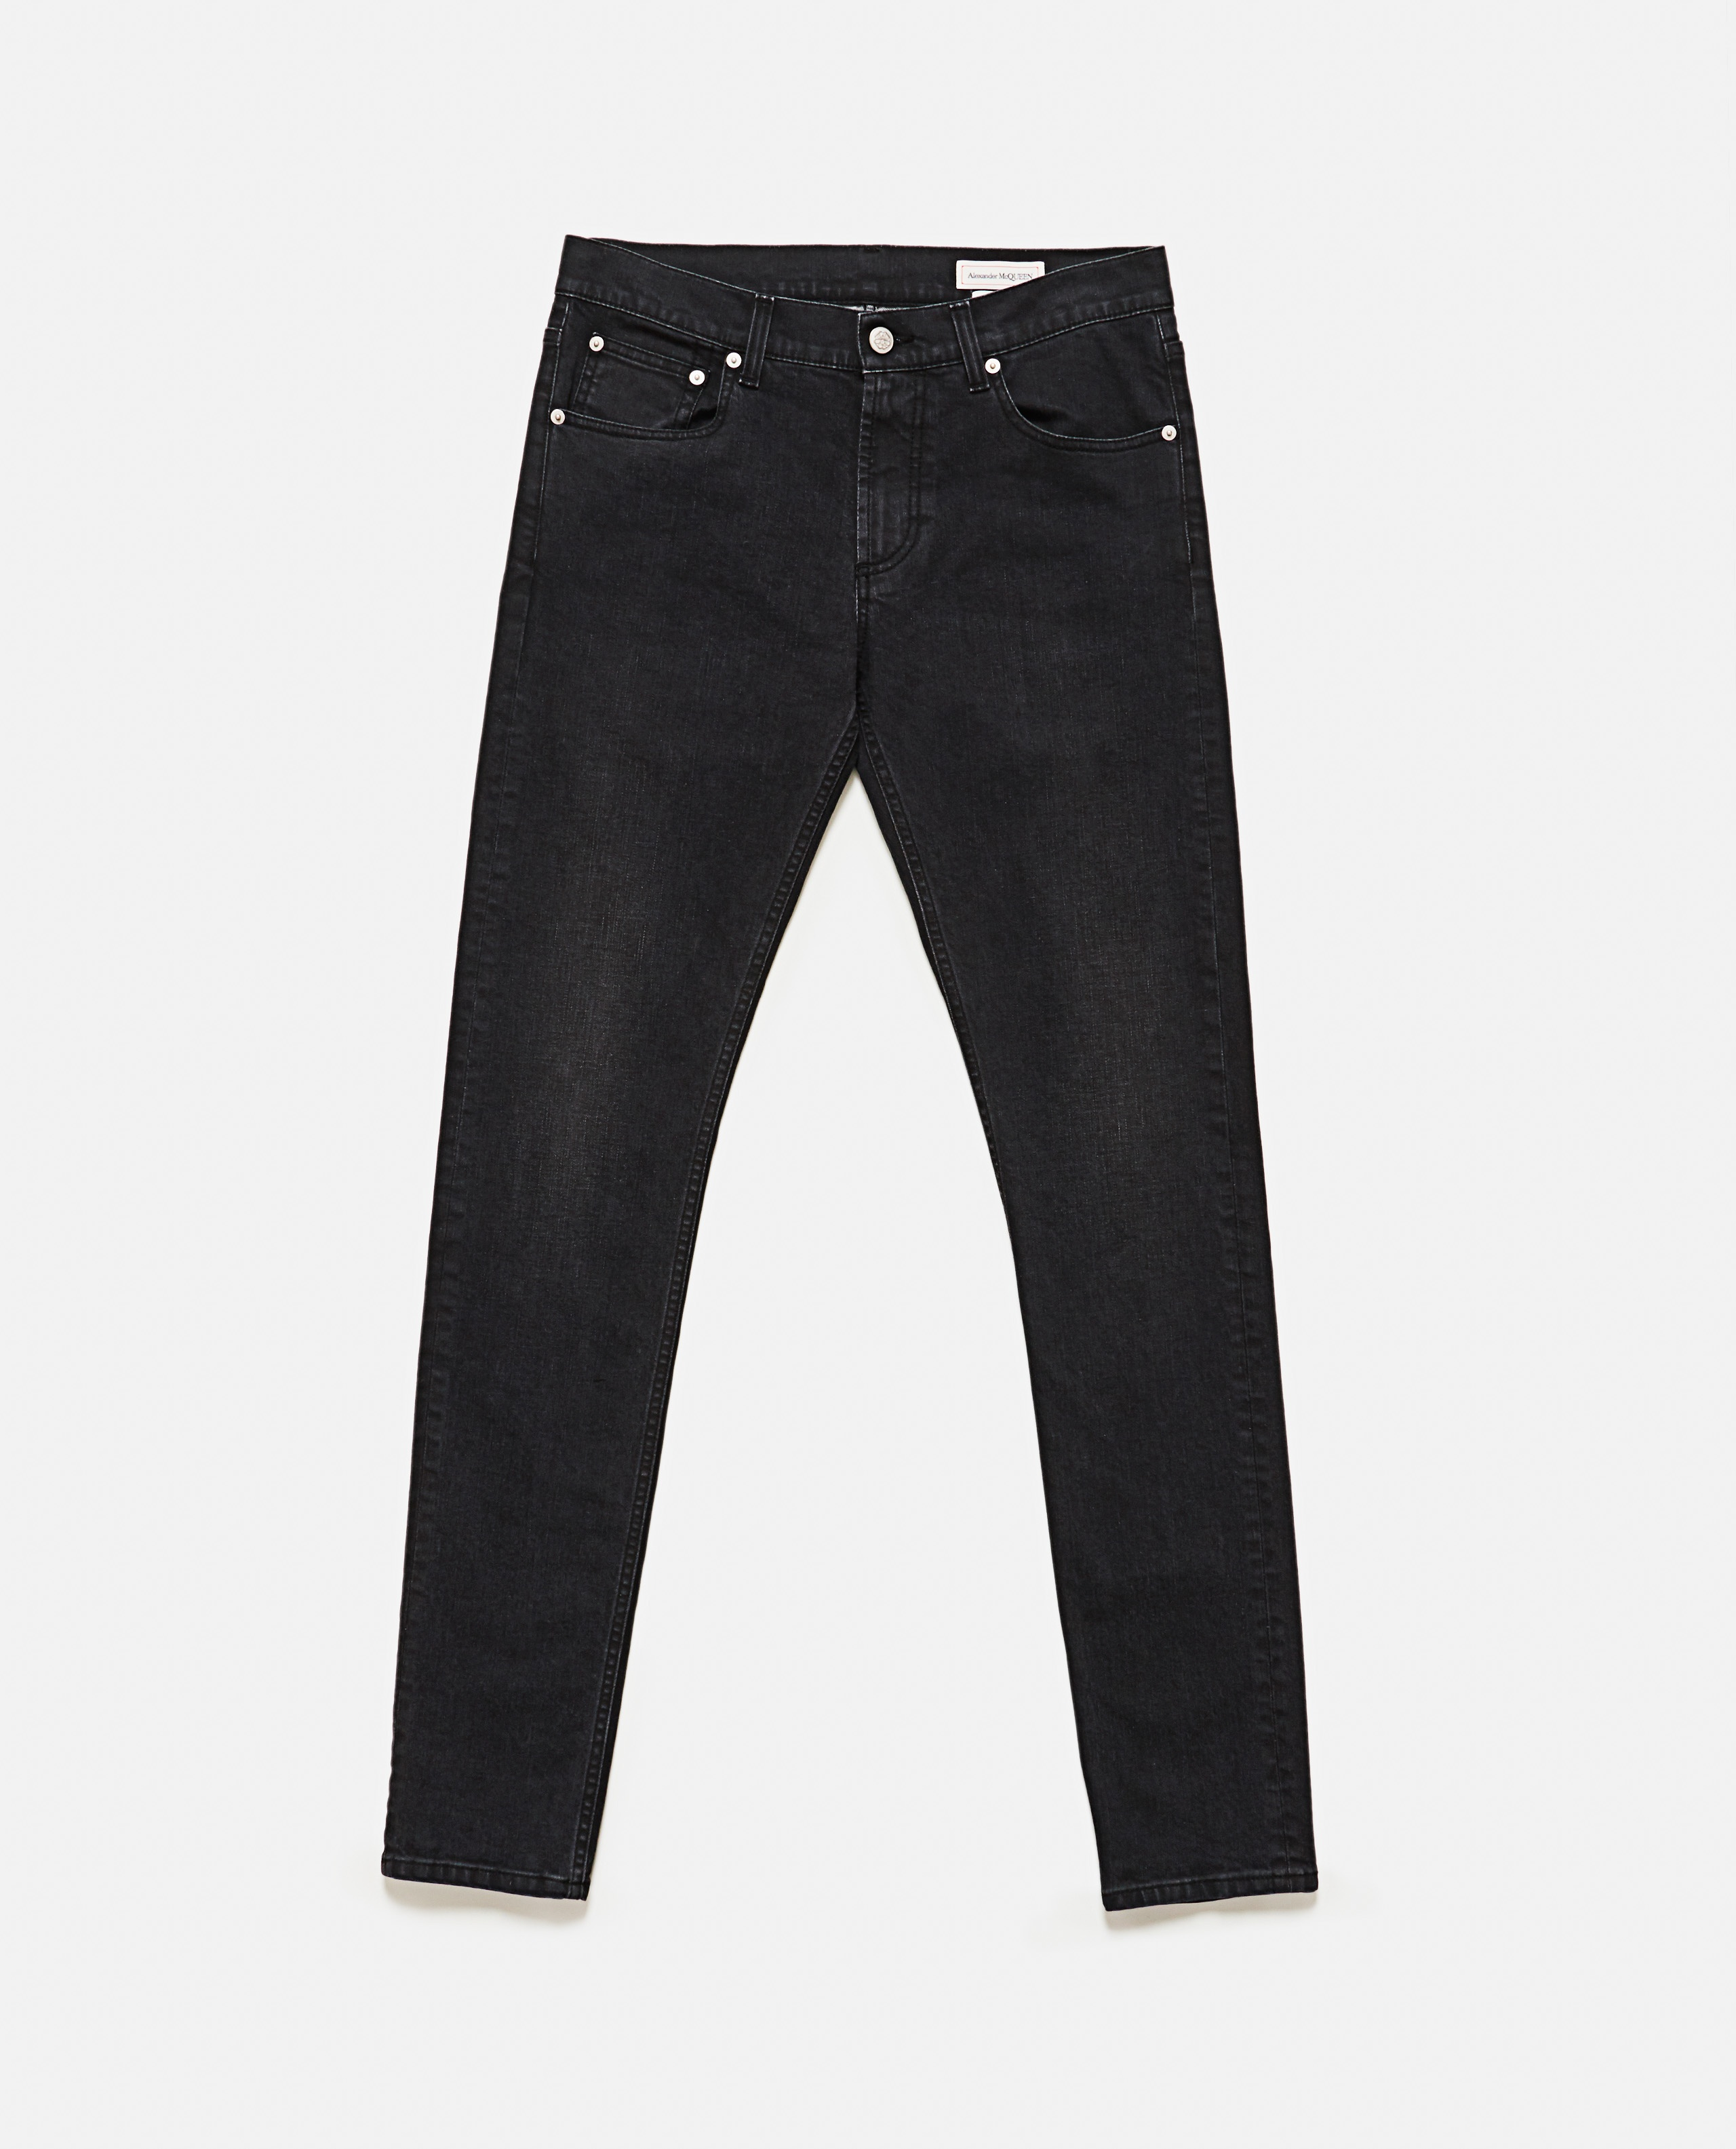 Slim fit jeans with embroidery Men Alexander McQueen 000179840026772 2